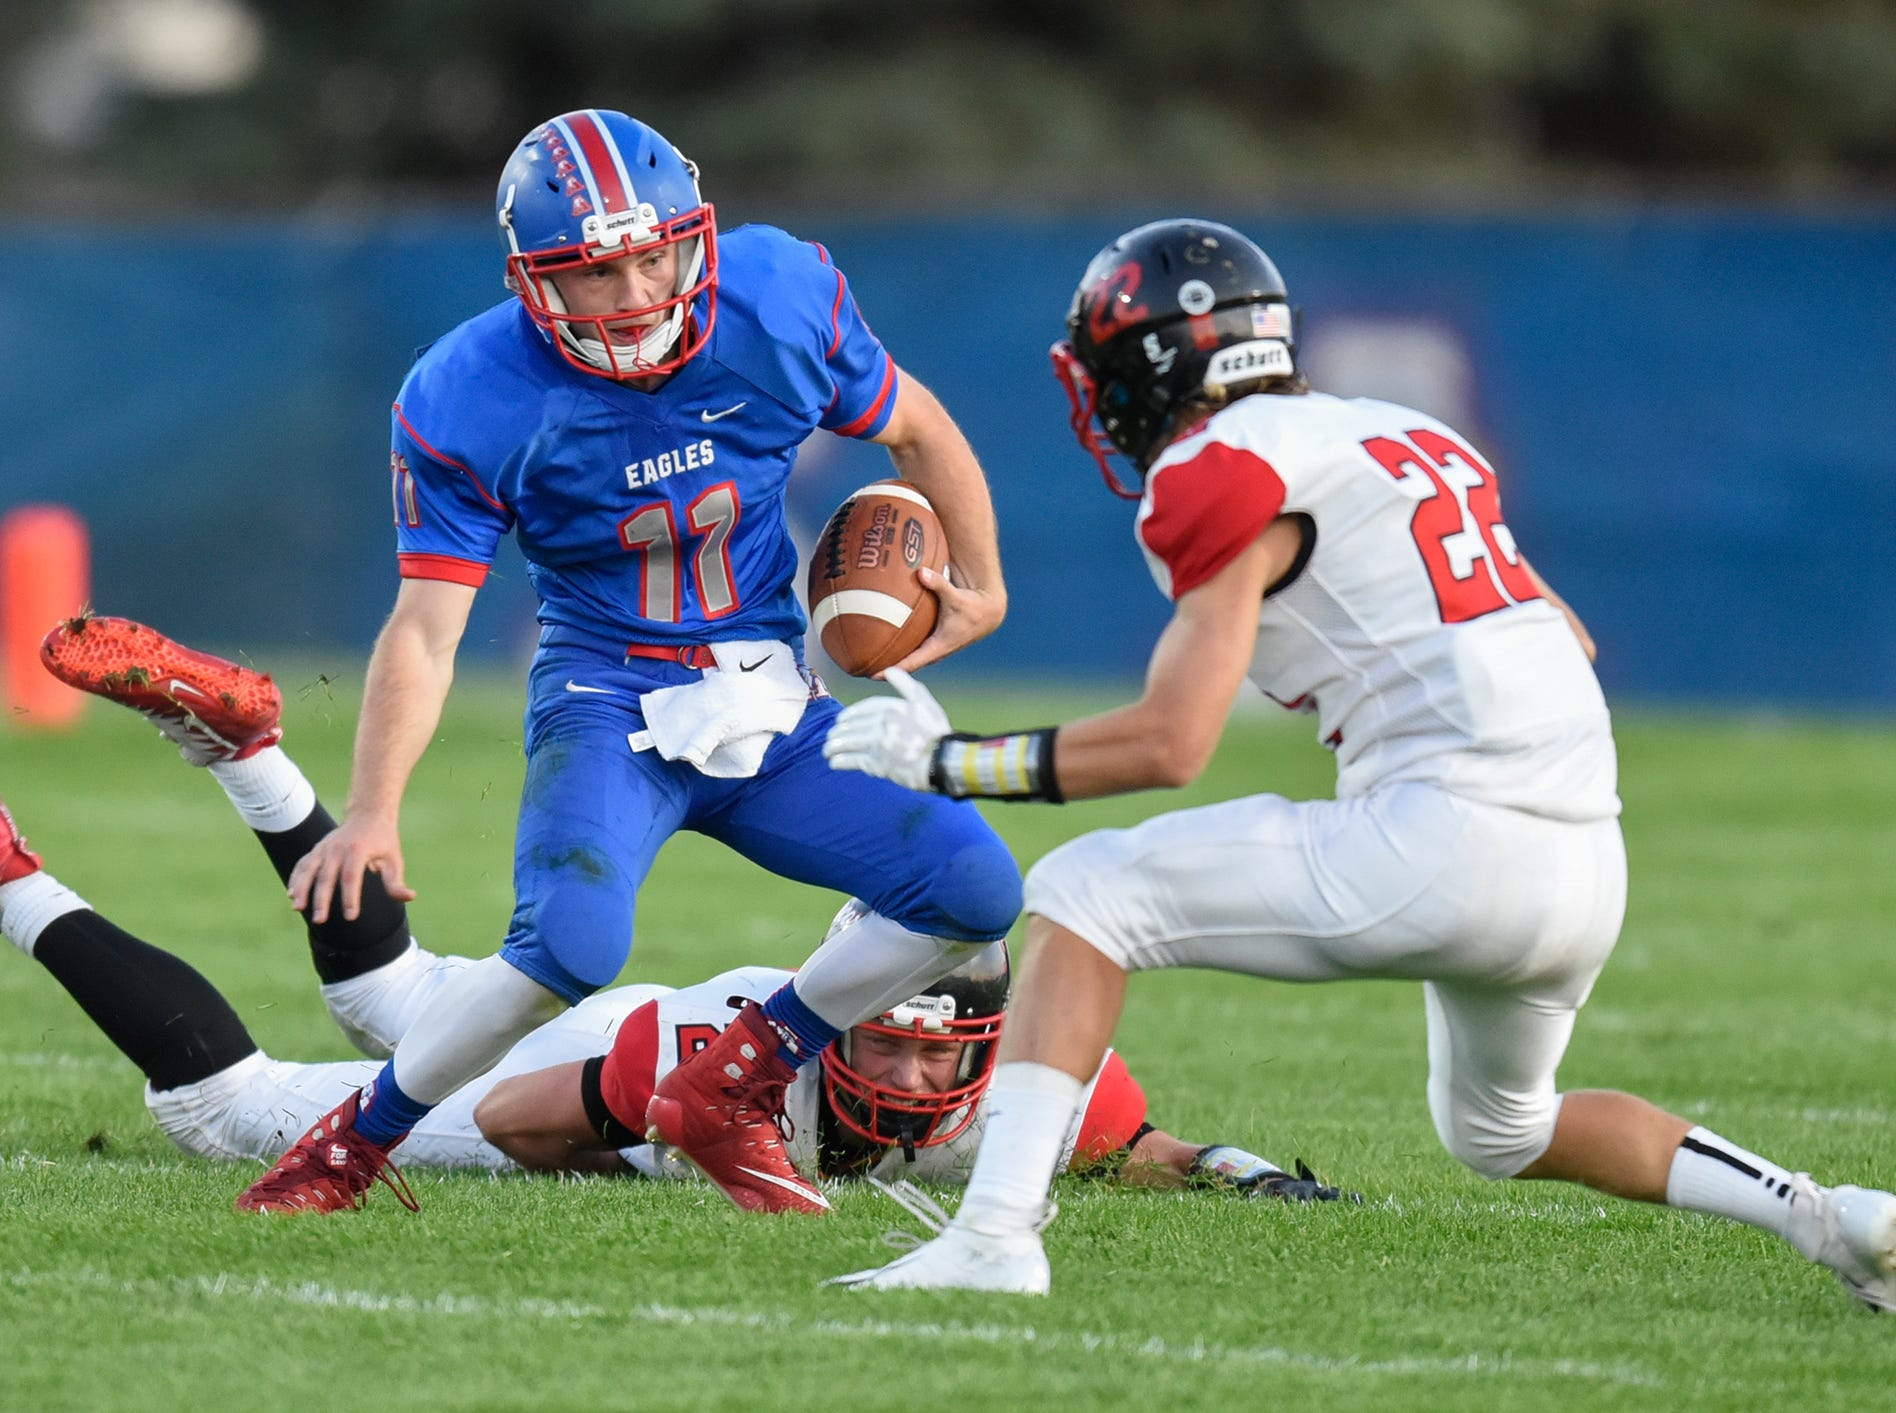 Apollo quarterback Neal Benson carries the ball during the Friday, Sept. 7, game at Apollo High School in St. Cloud.